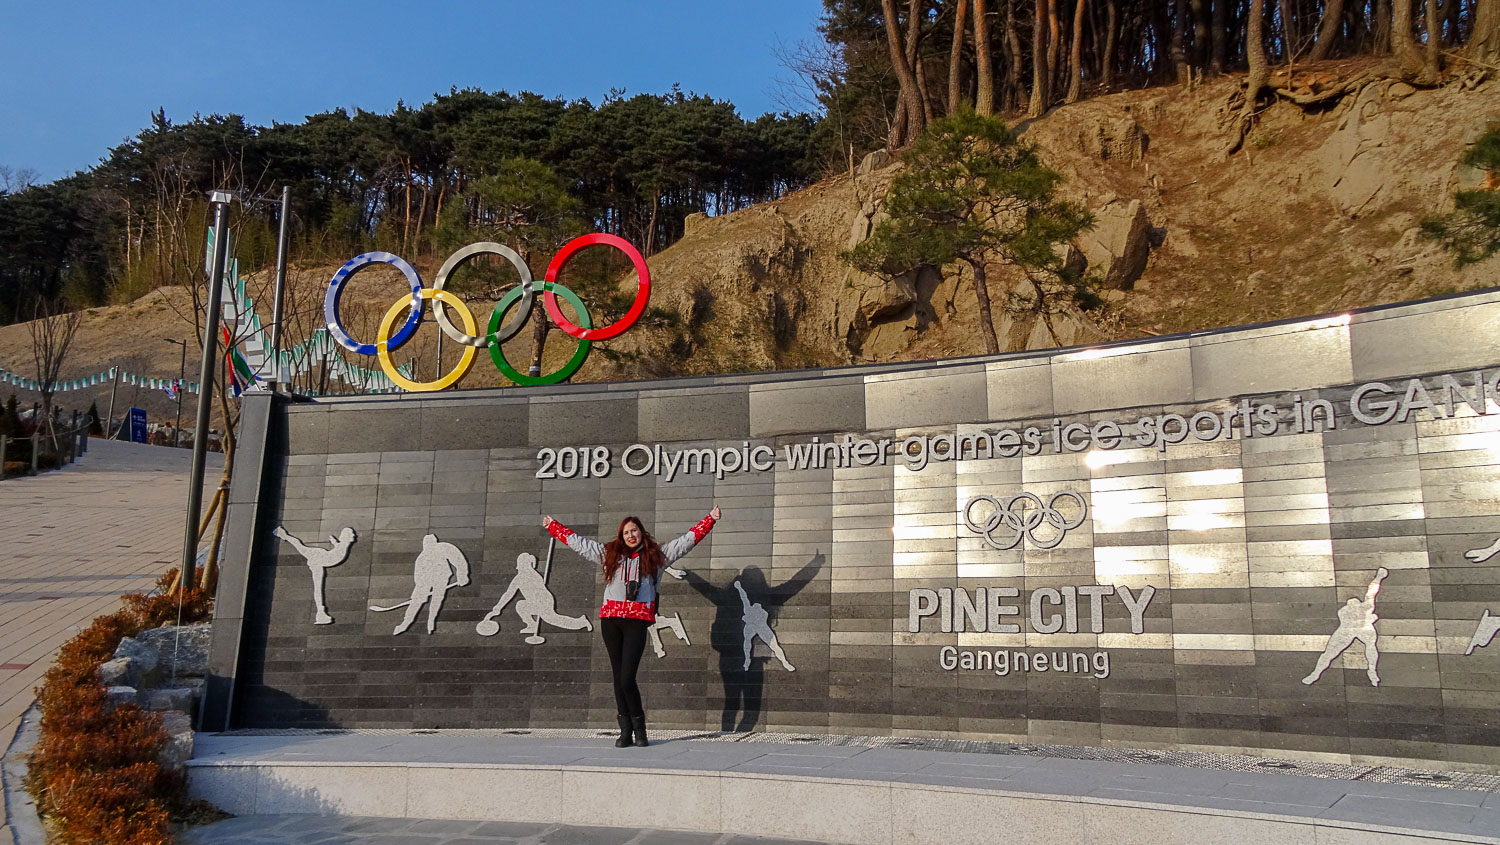 20-02-2018 - I need at leas one Olympic photo